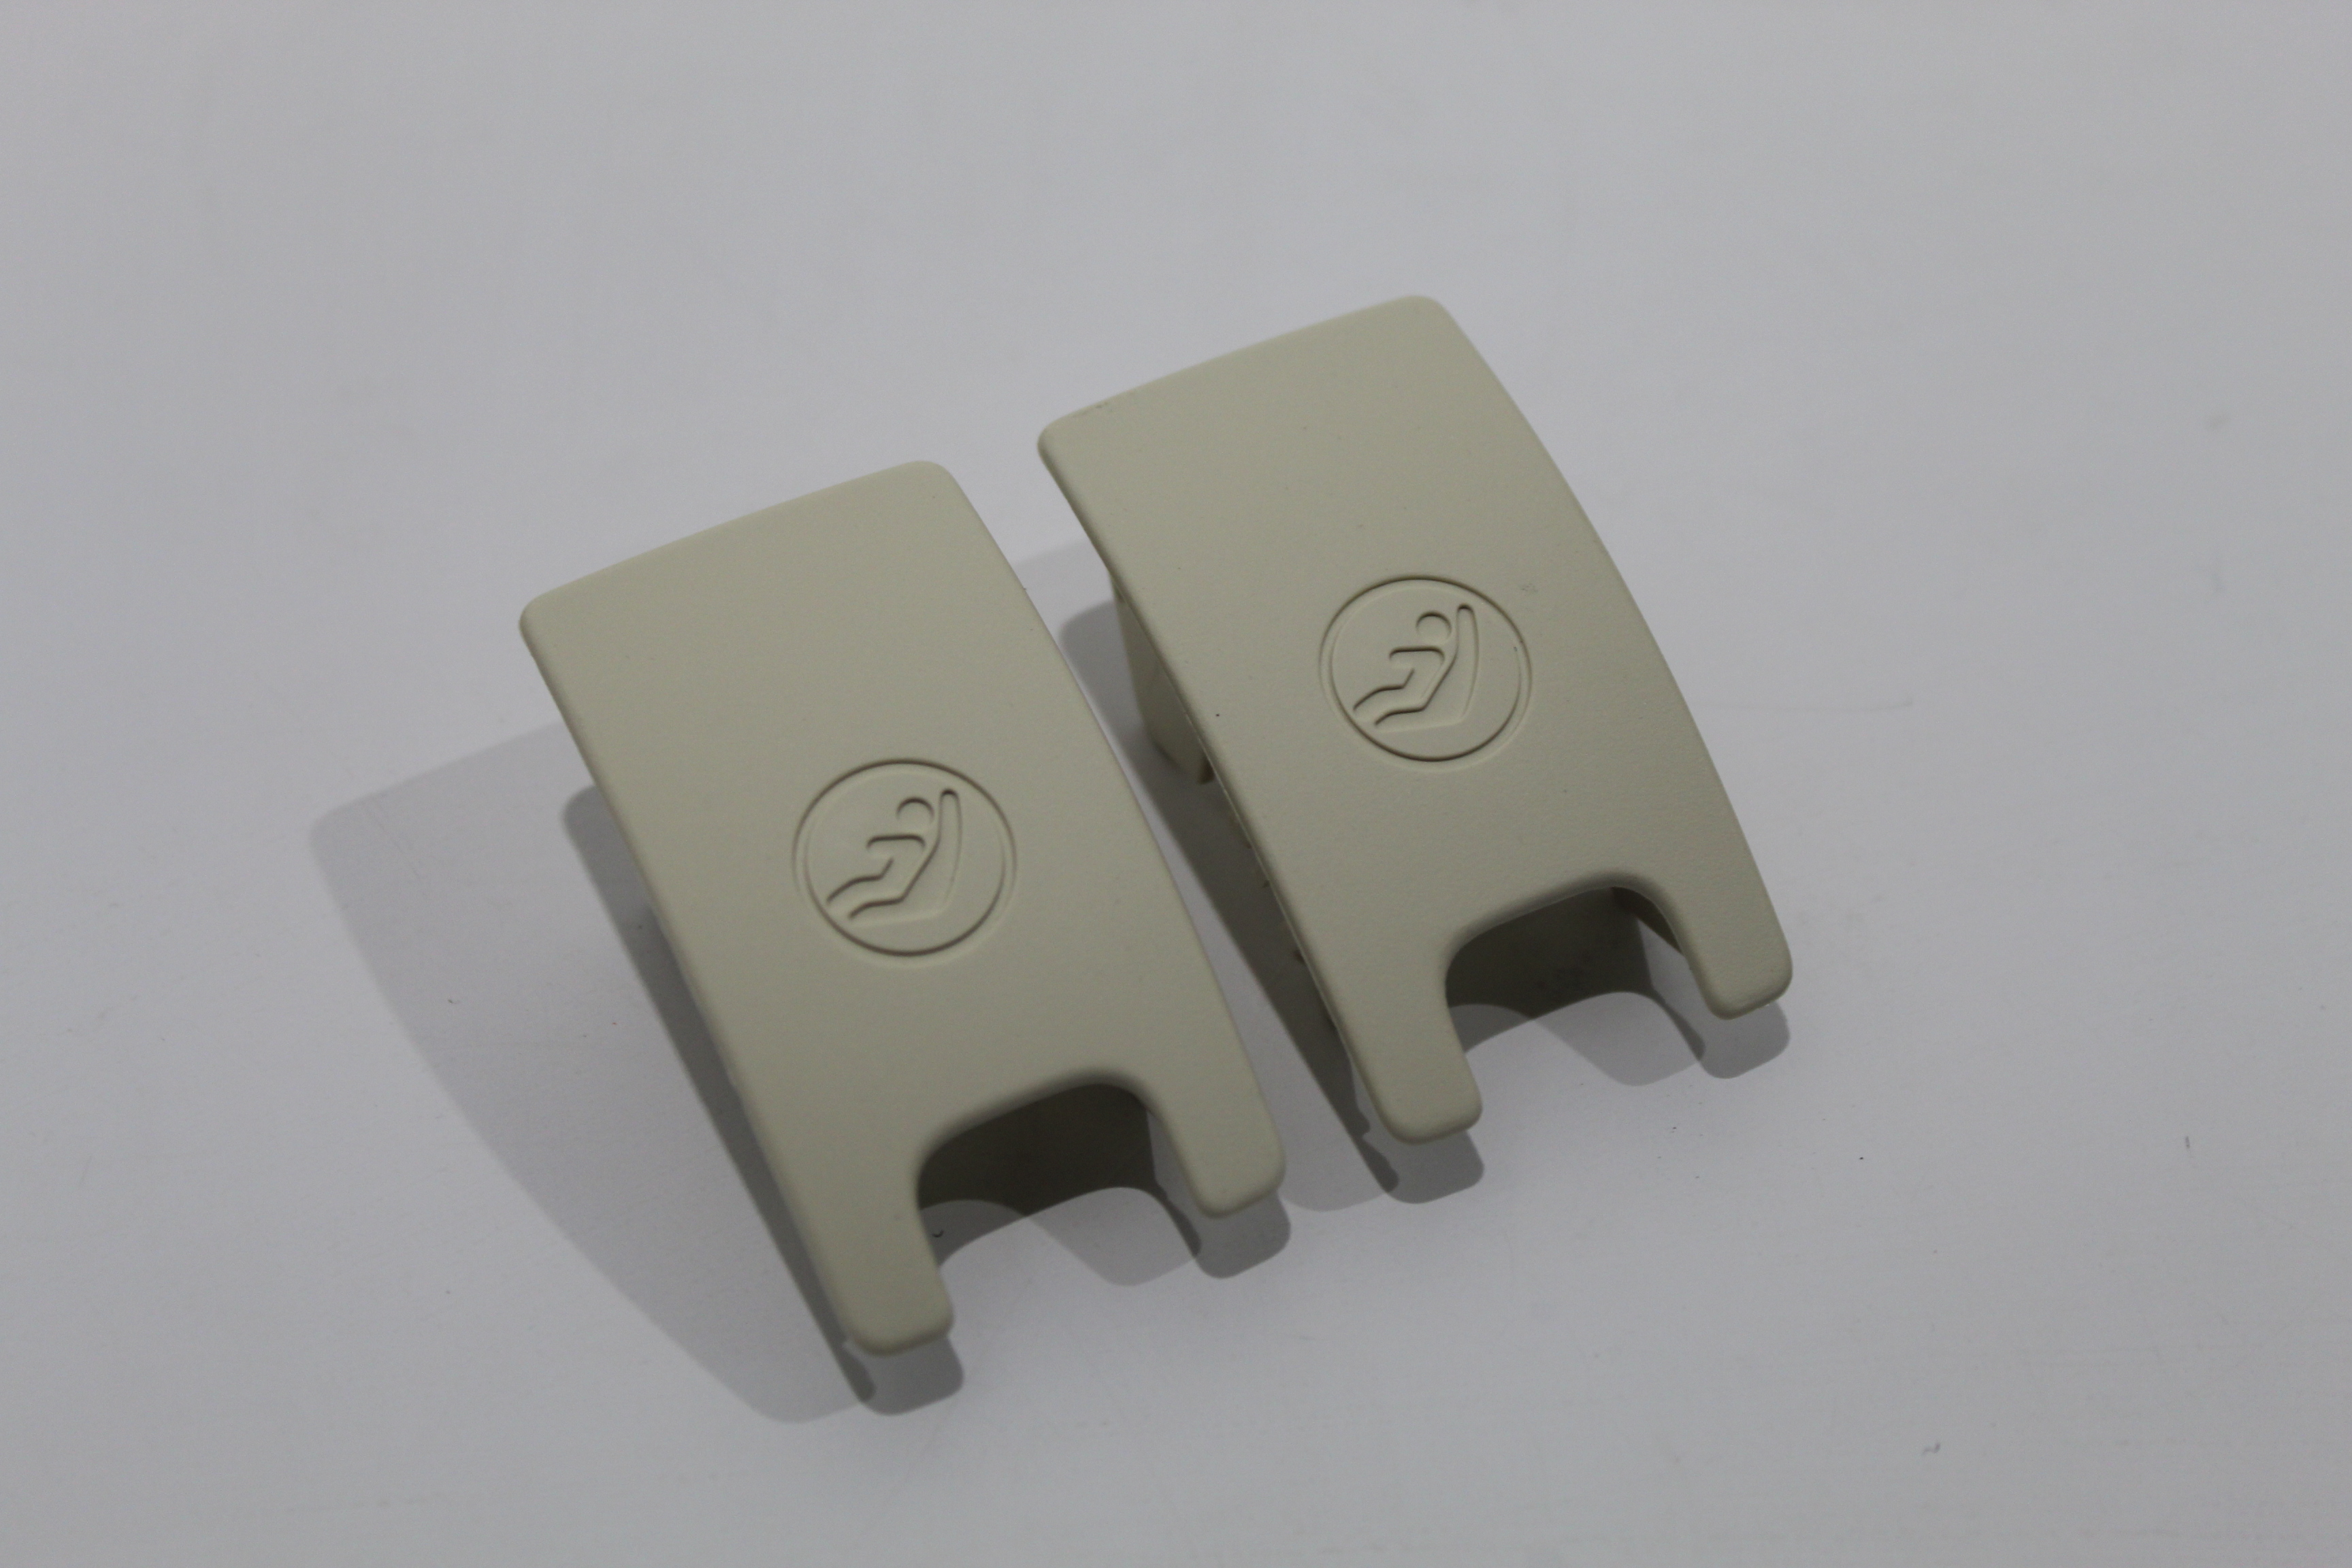 Audi A7 4g A6 C7 Pair Isofix Slot Trim Covers Alabaster White New 4g88871879a6 Ebay